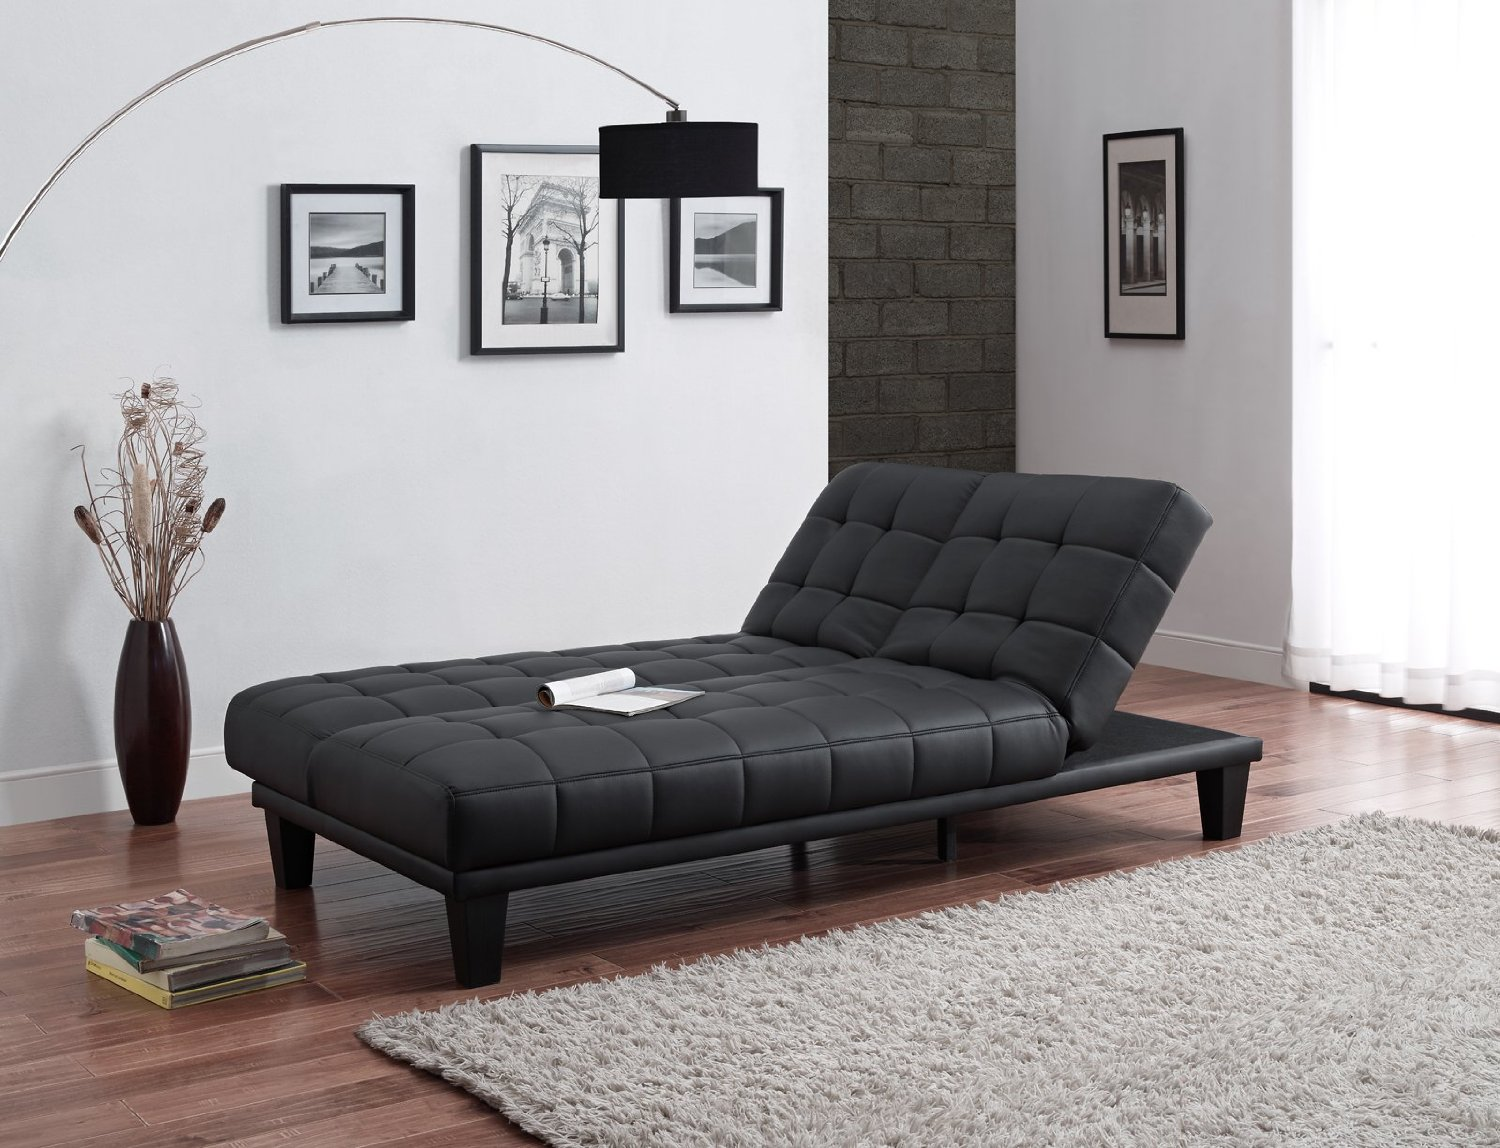 convertible futon sofa bed lounger chaise cover julia with black